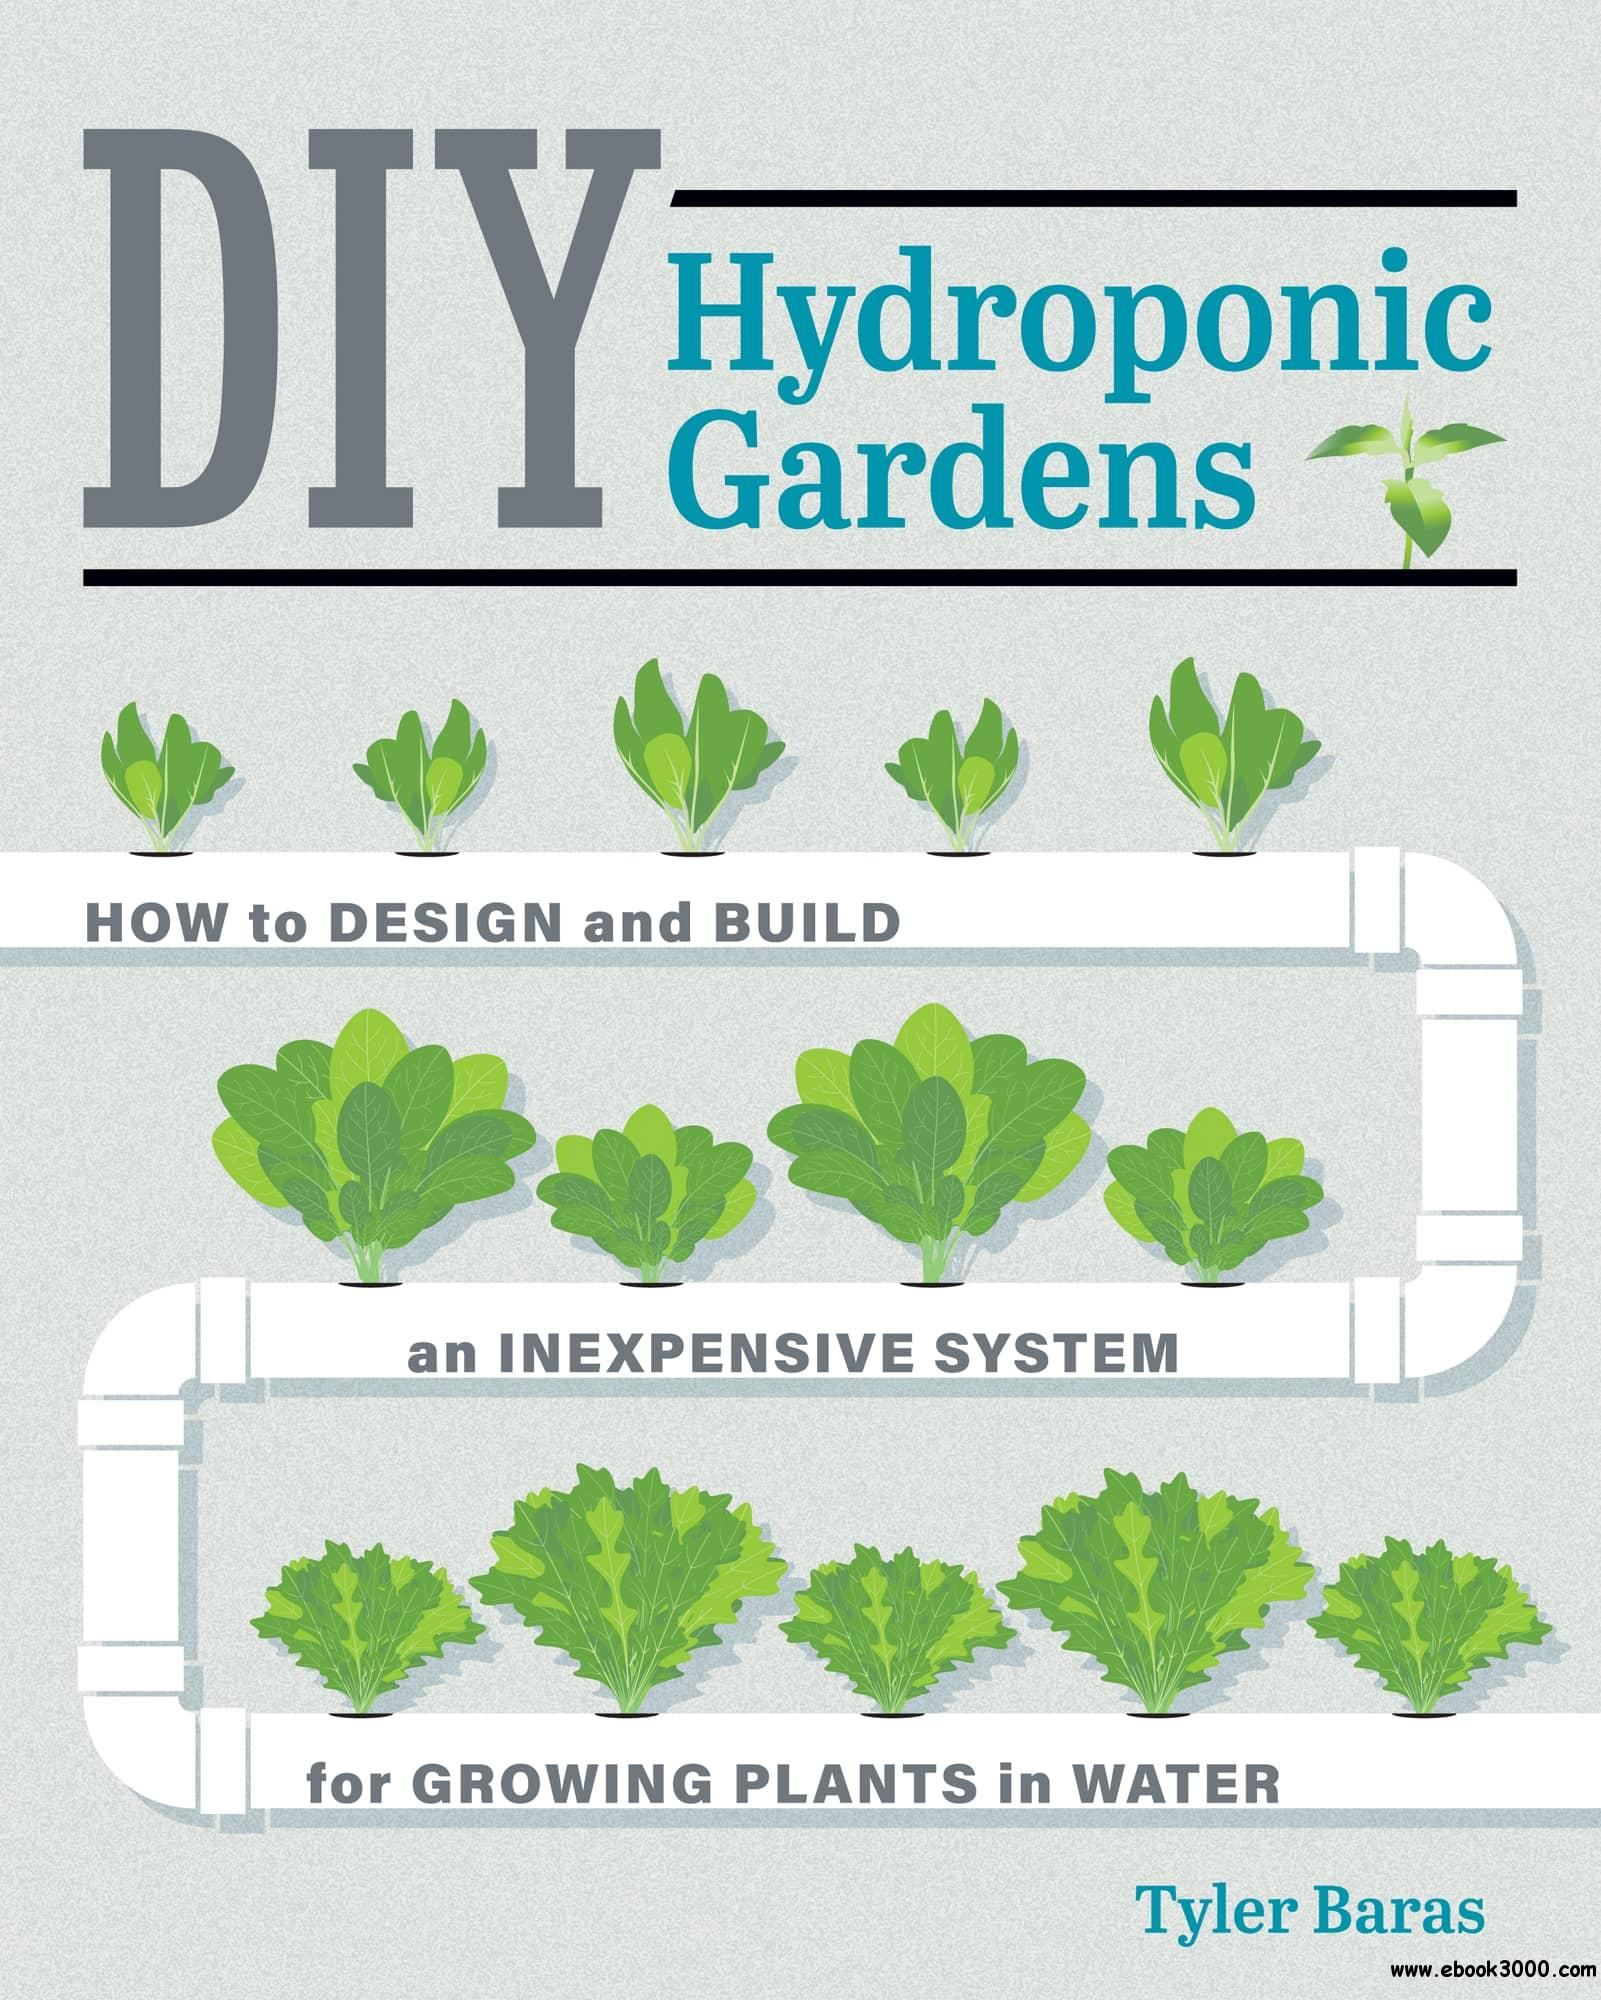 DIY Hydroponic Gardens: How to Design and Build an Inexpensive System for Growing Plants in Water